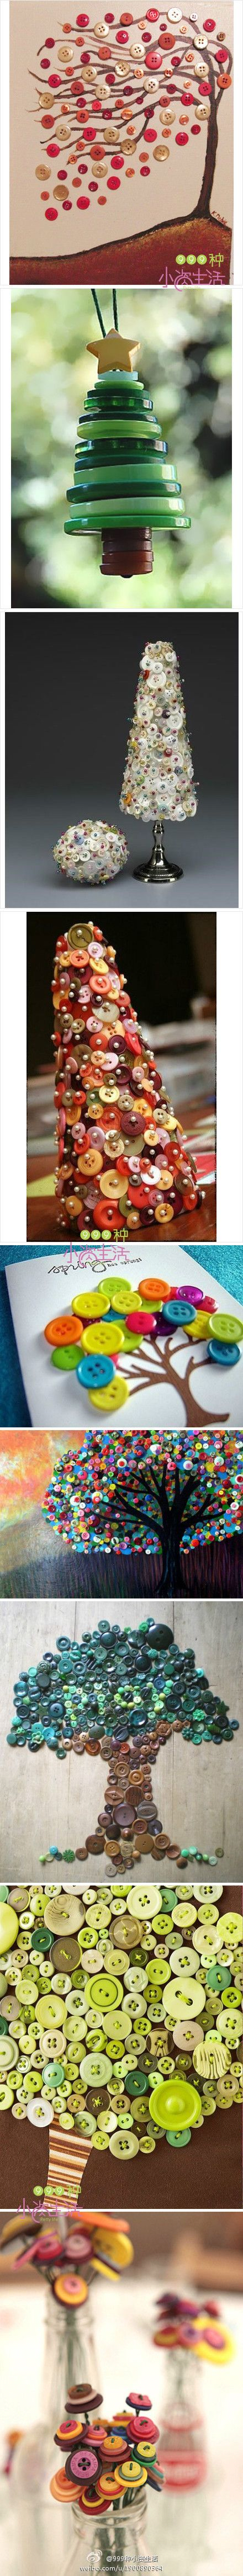 Button Crafts! Wow, such cool ideas.